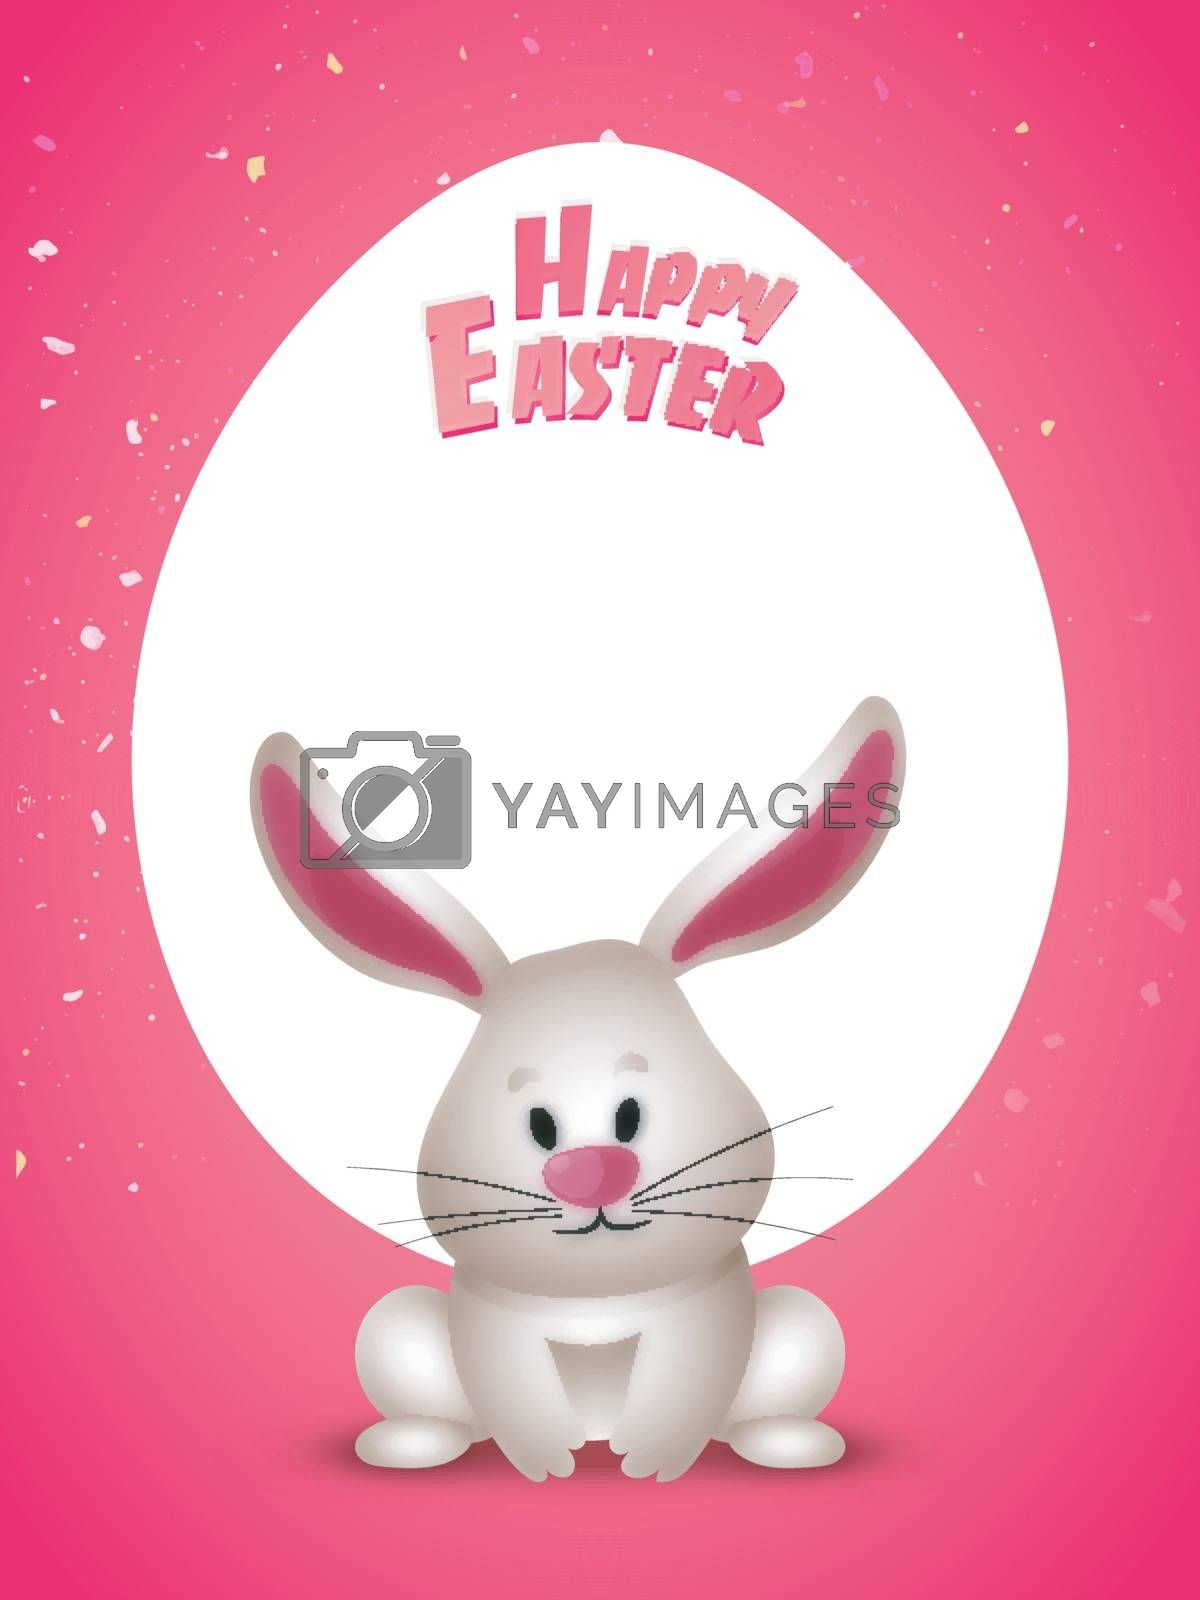 Happy Easter poster design with cute bunny.